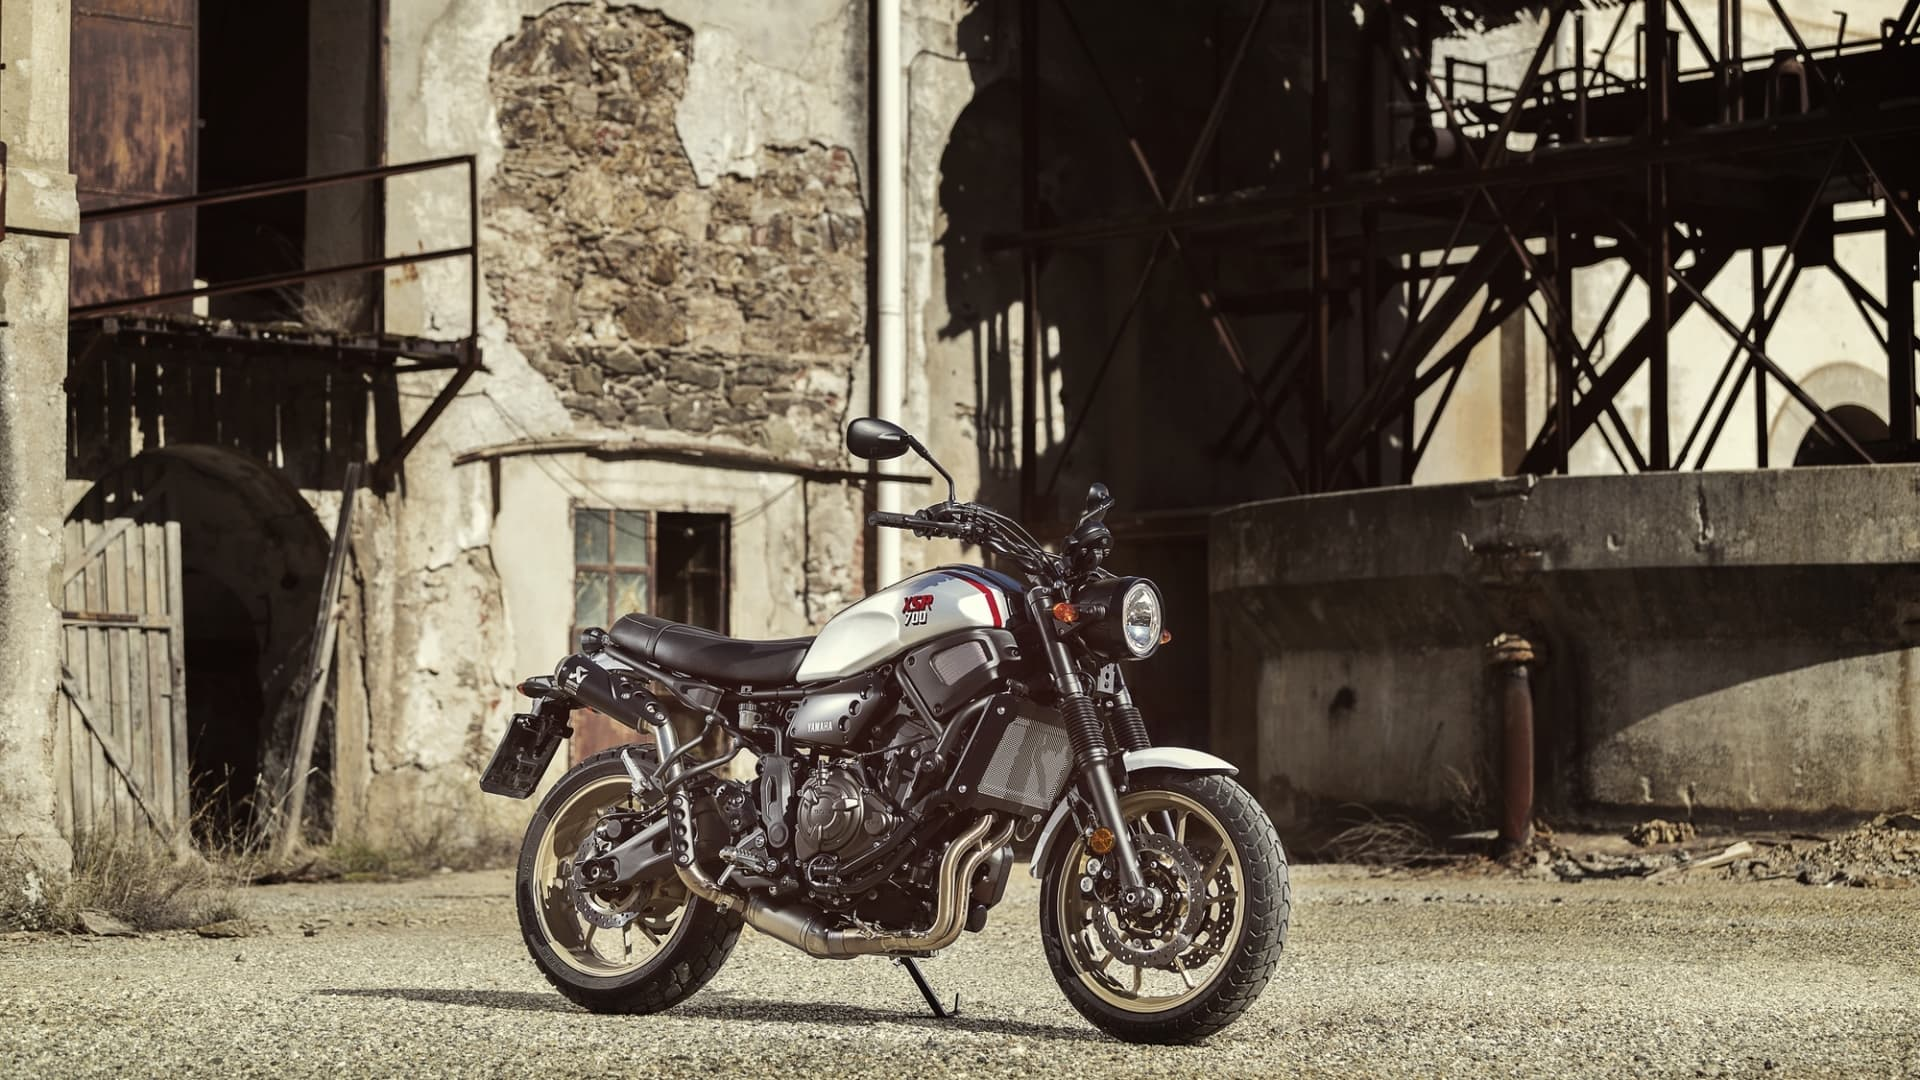 2019 Yamaha Xs700scr Eu Tech Black Static 001 03